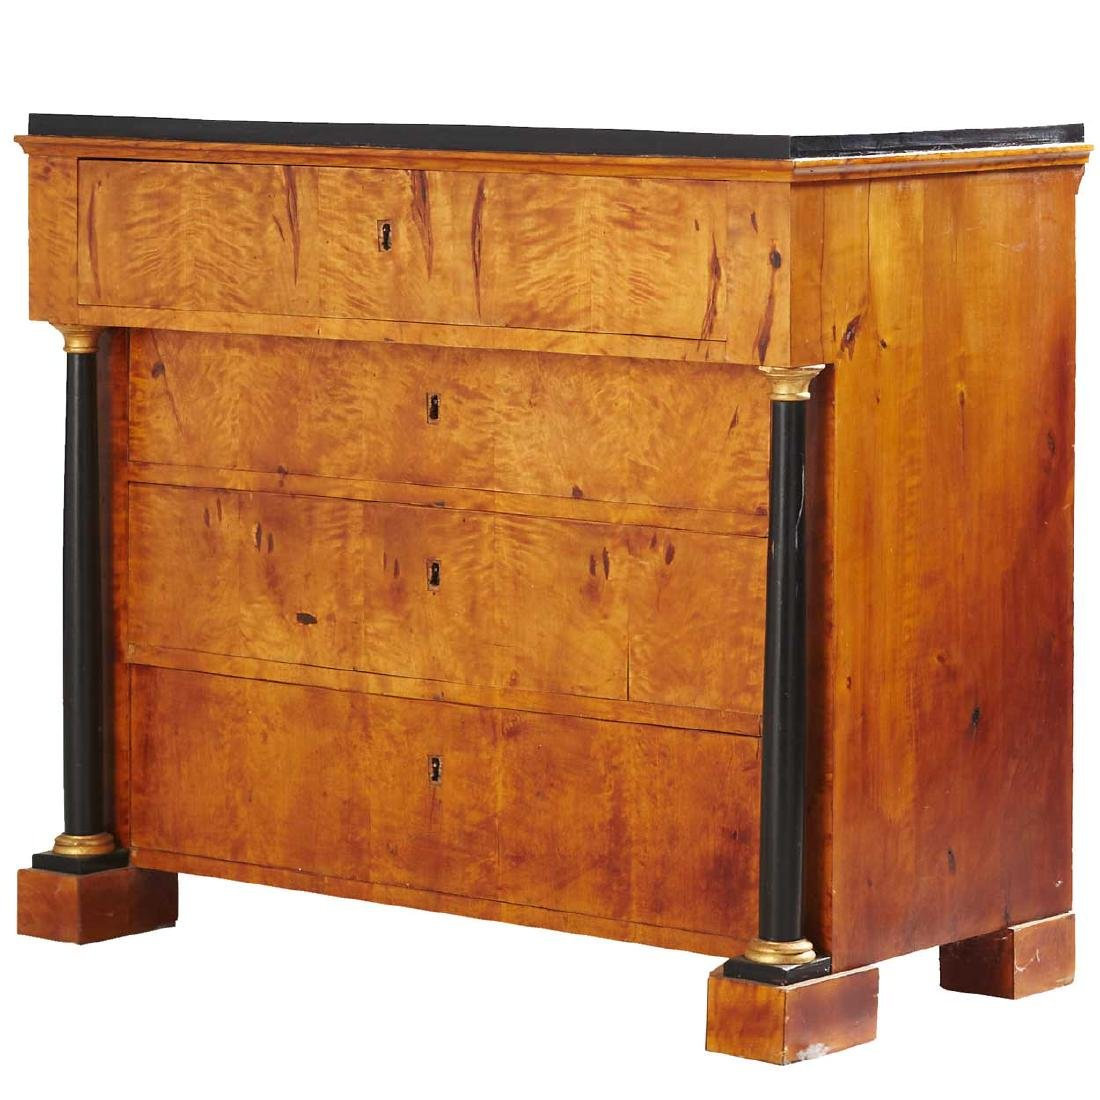 Swedish Biedermeier Style Birch Veneer Commode